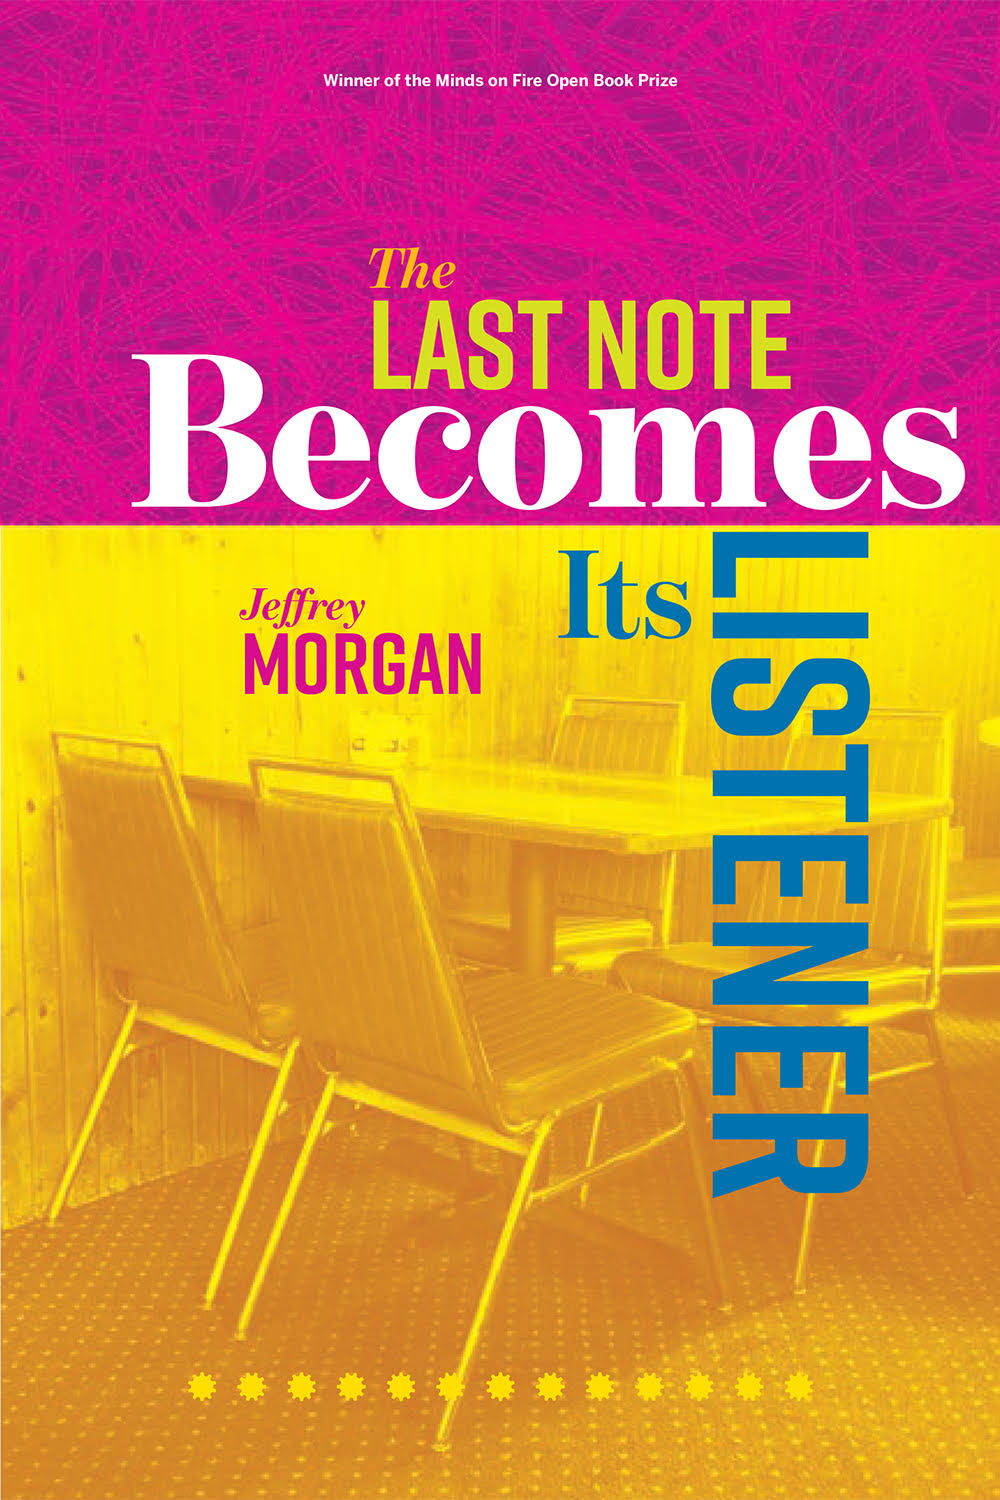 The Last Note Becomes Its Listener